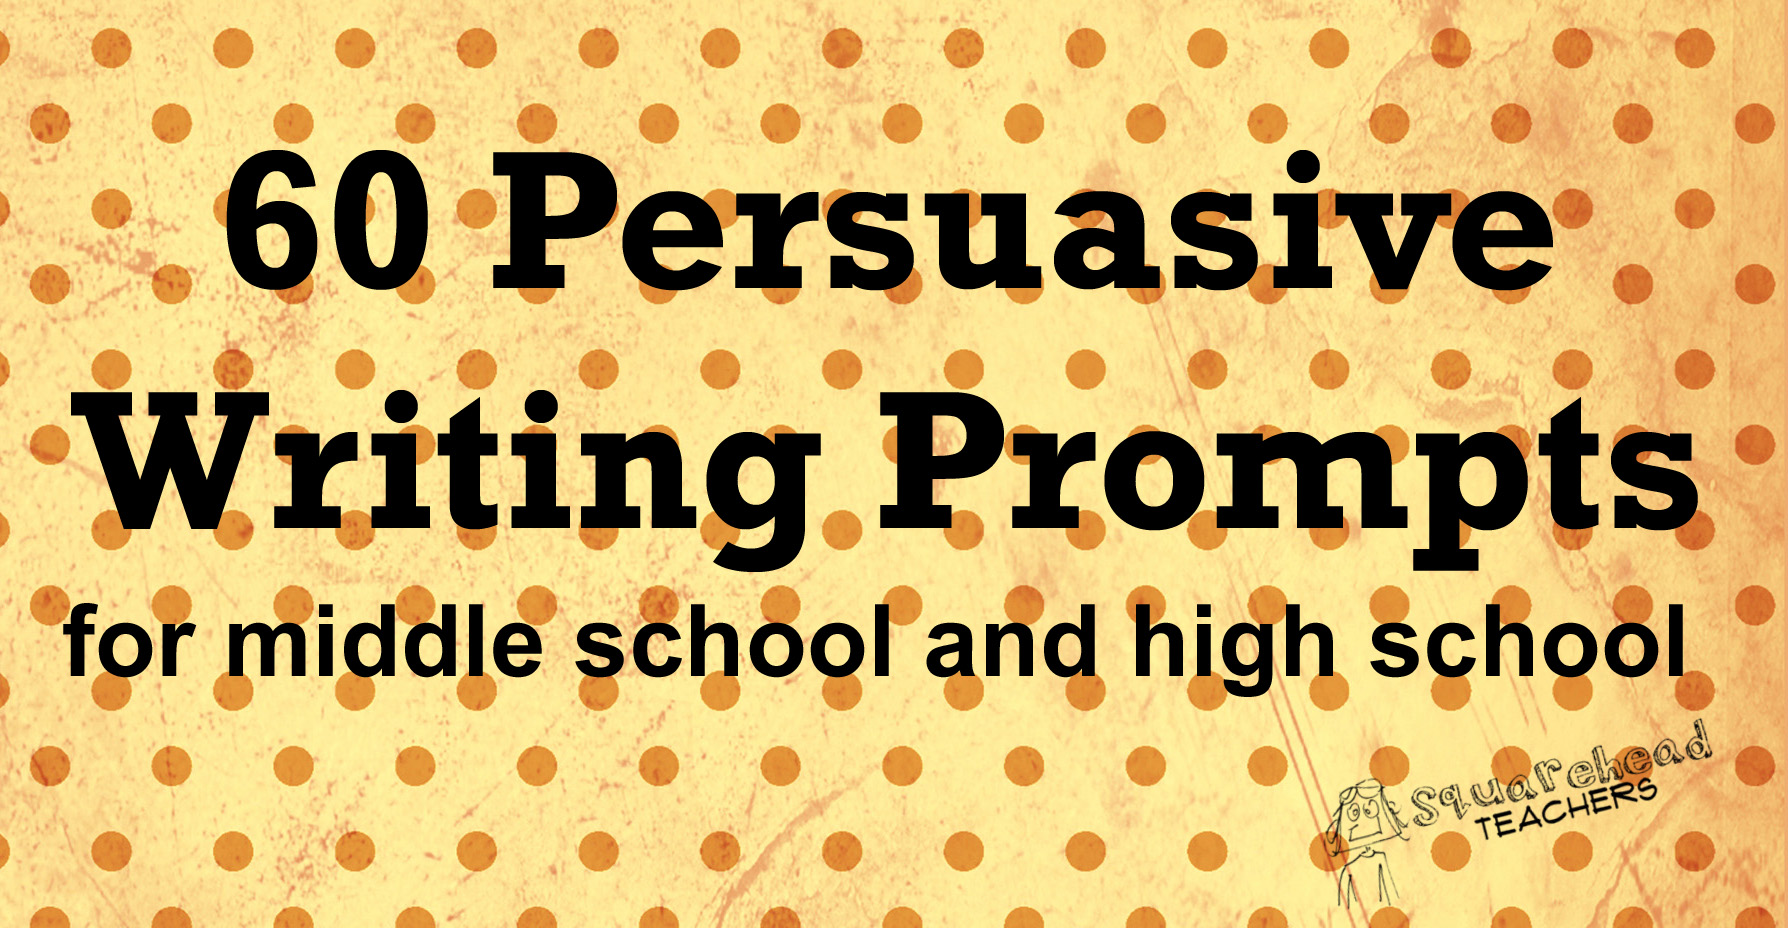 Persuasive Writing Prompts For Middle School  High School   Pers Writing Prompts For Ms And Hs